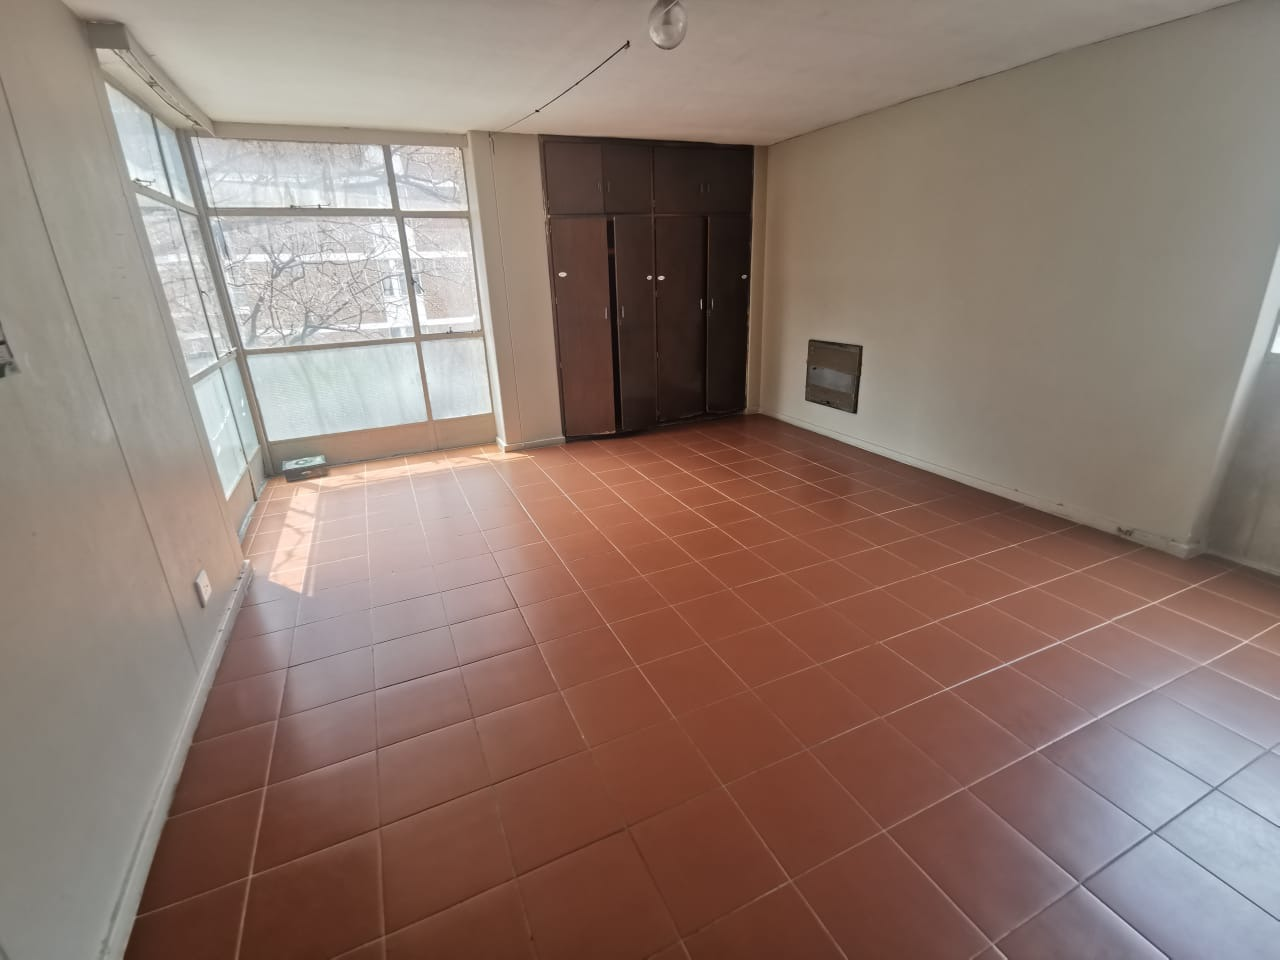 0.5 Bedroom Apartment / Flat To Rent in Hillbrow